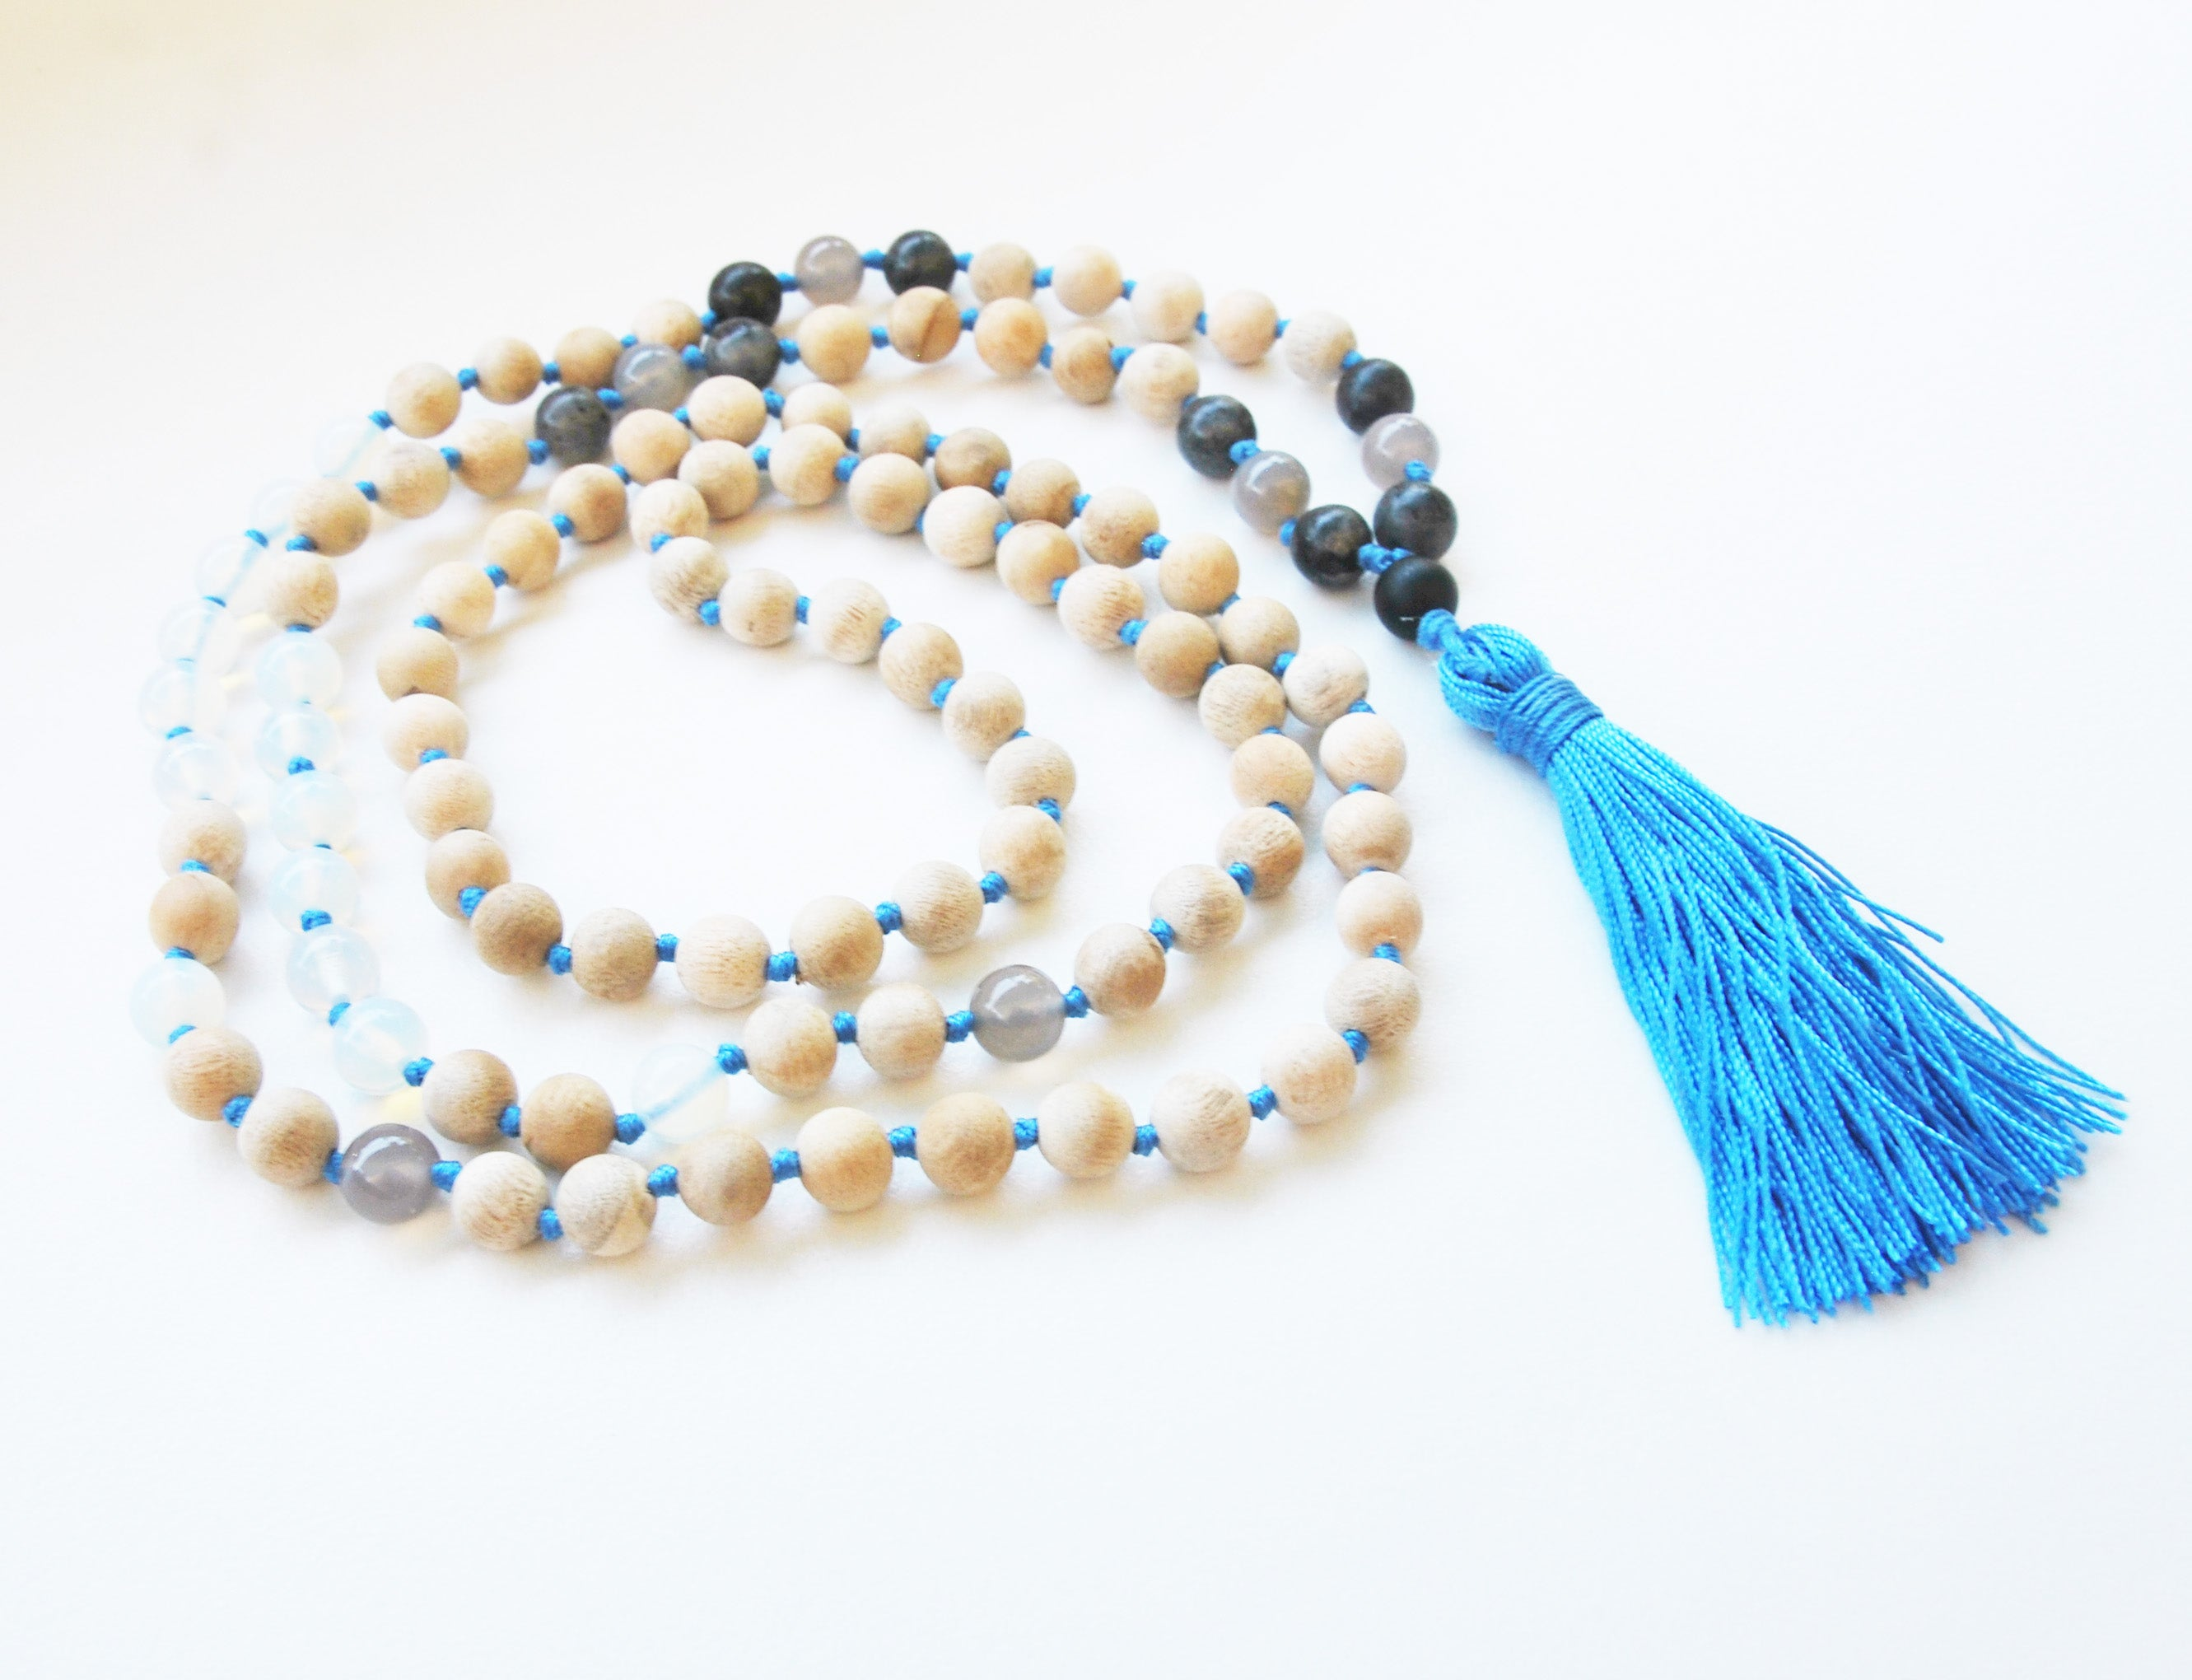 8mm Sandalwood & Opalite 108 Knotted Mala Necklace with Colored Tassel